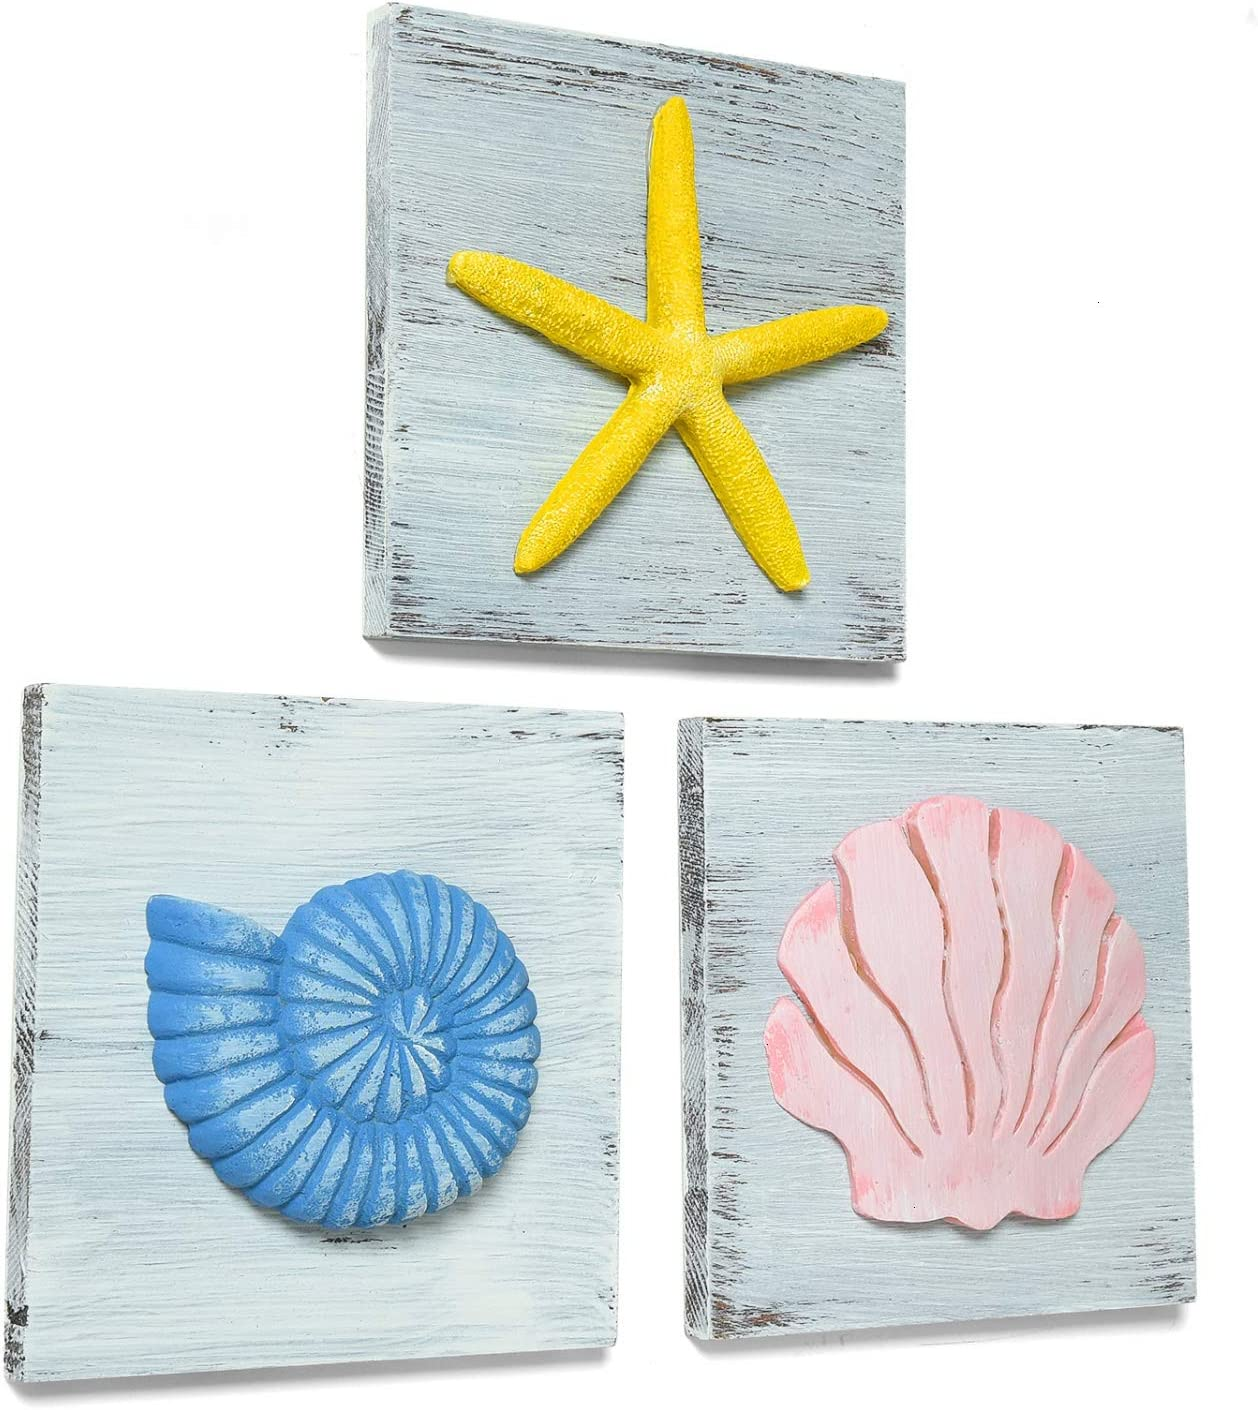 YoleShy Beach Wall Decor Set of 3 Wooden Rustic Coastal Decor Nautical Decorations for Home, Bathroom, Bedroom, Living Room, Starfish Seashell Decor - 6 x 6 Inches